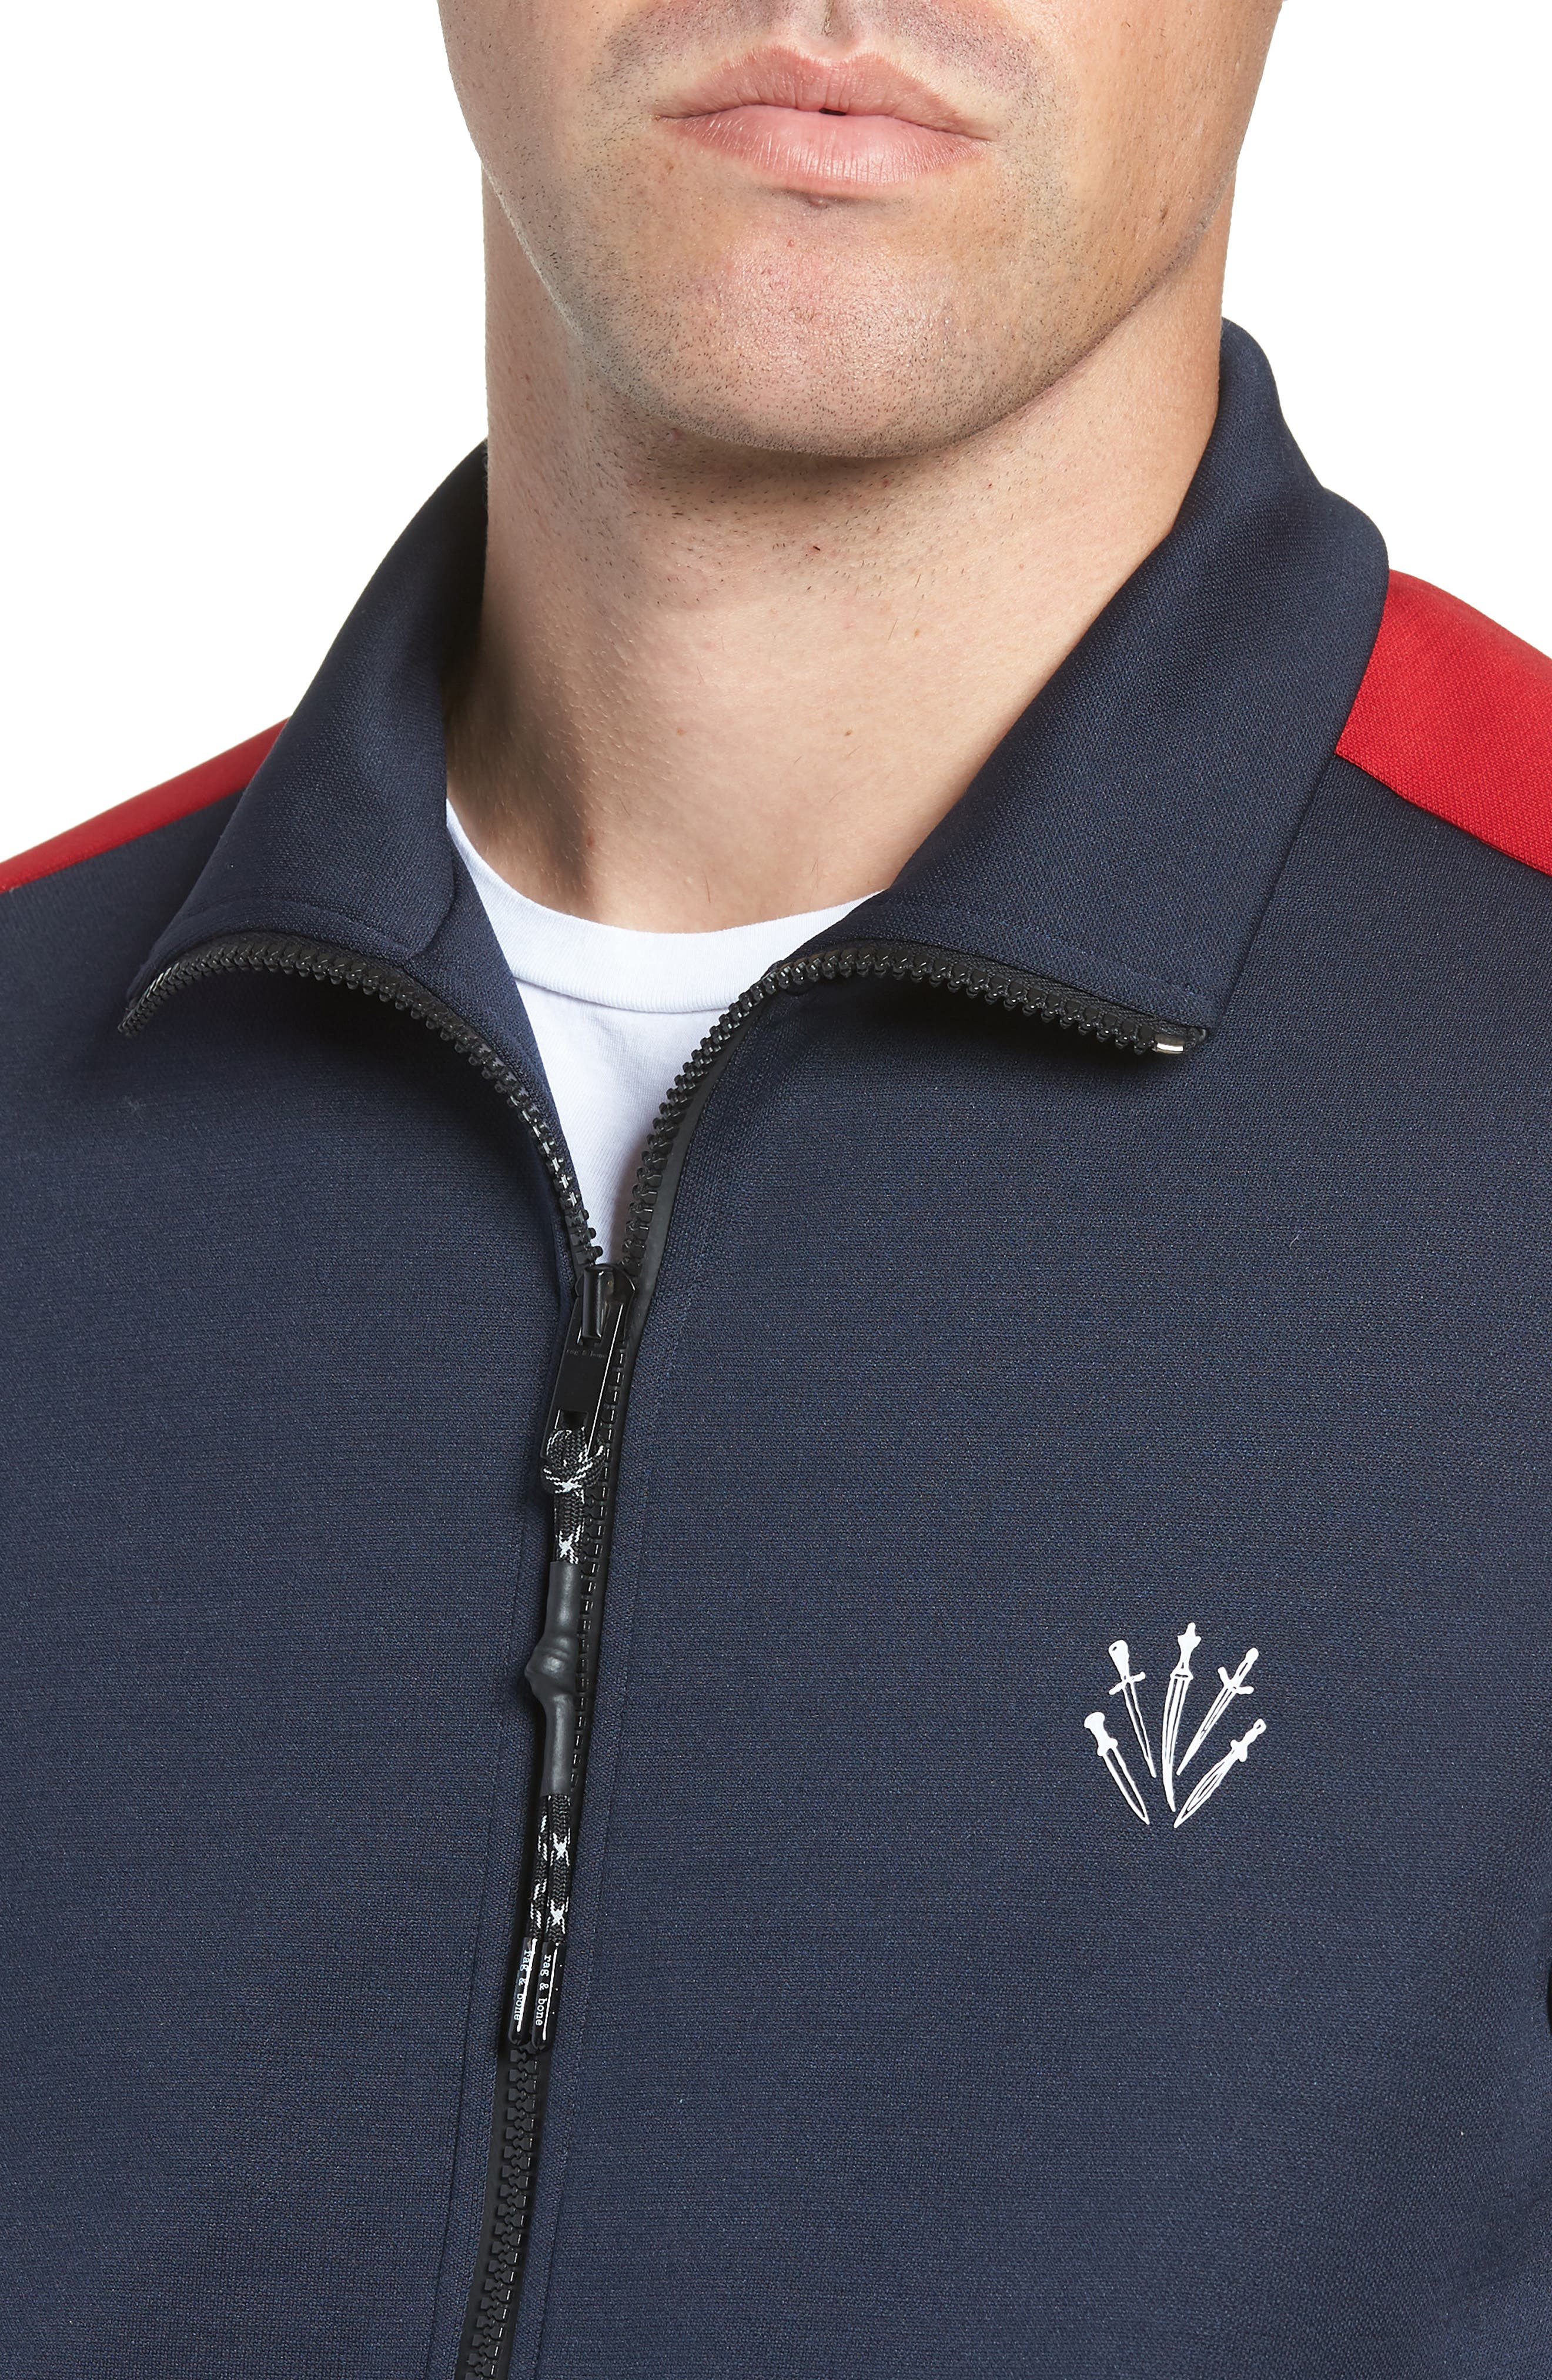 Club Slim Track Jacket,                             Alternate thumbnail 4, color,                             NAVY/ RED